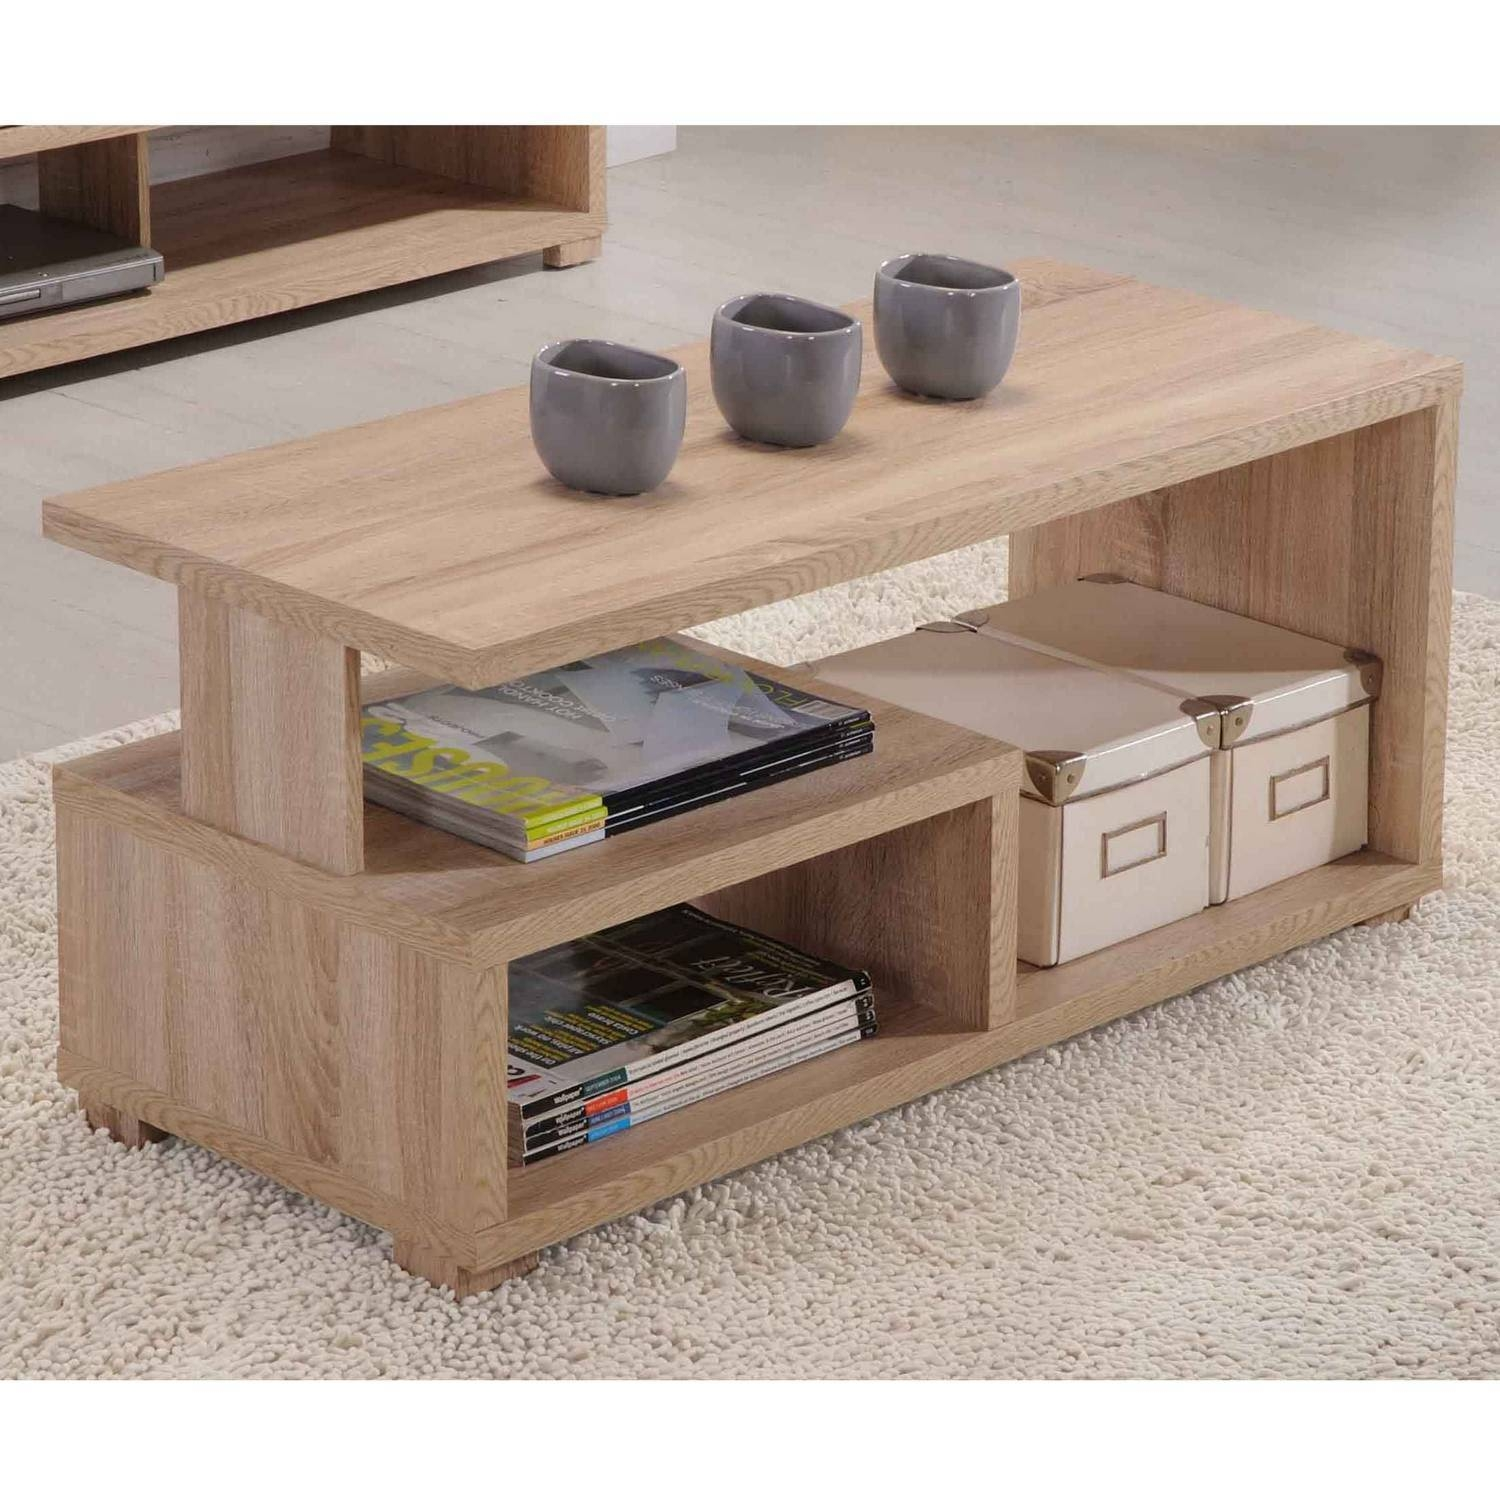 Apollo Coffee Table intended for Range Coffee Tables (Image 1 of 30)